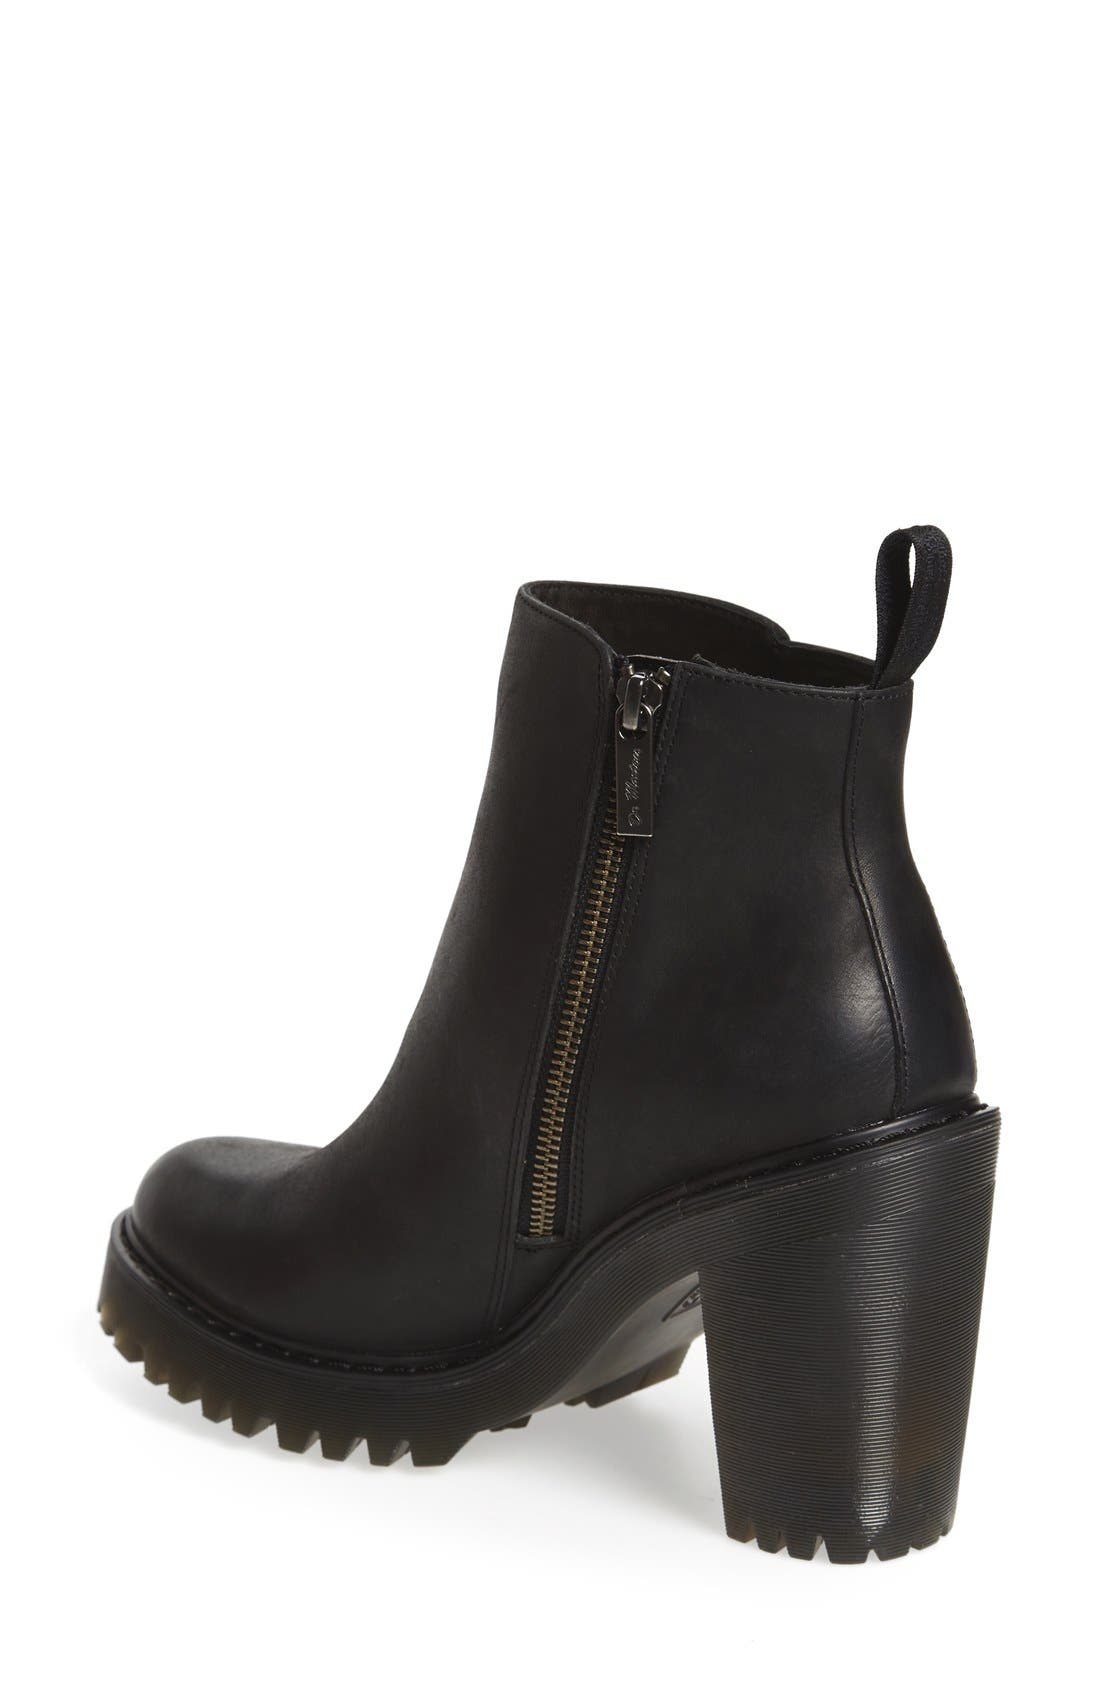 'Magdalena' Platform Bootie,                             Alternate thumbnail 2, color,                             Black Wyoming